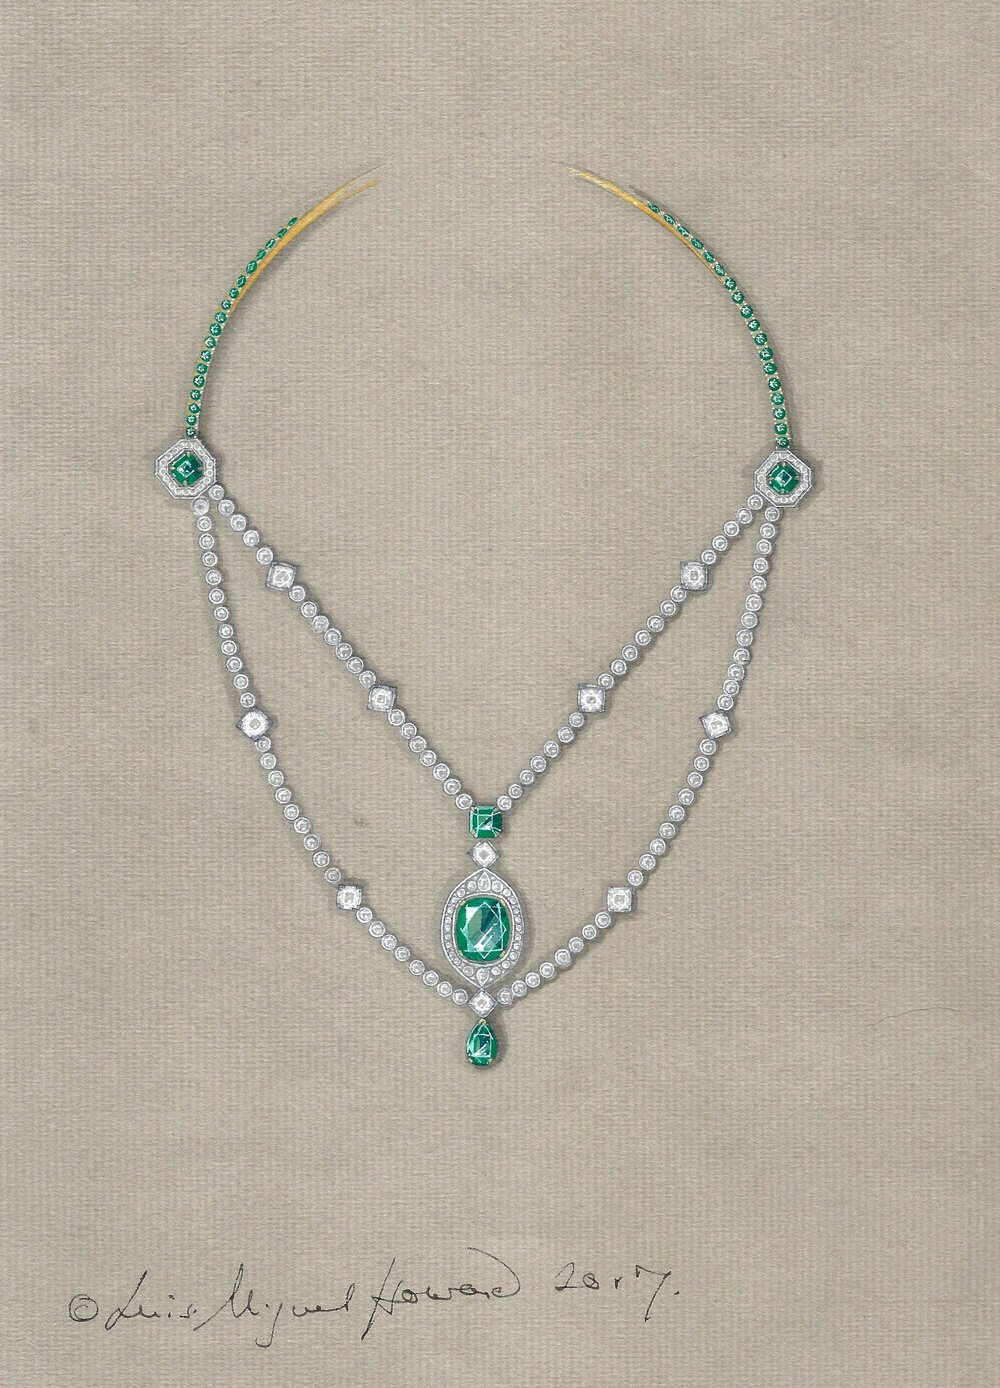 Working drawing for the Colombian emerald and diamond necklace